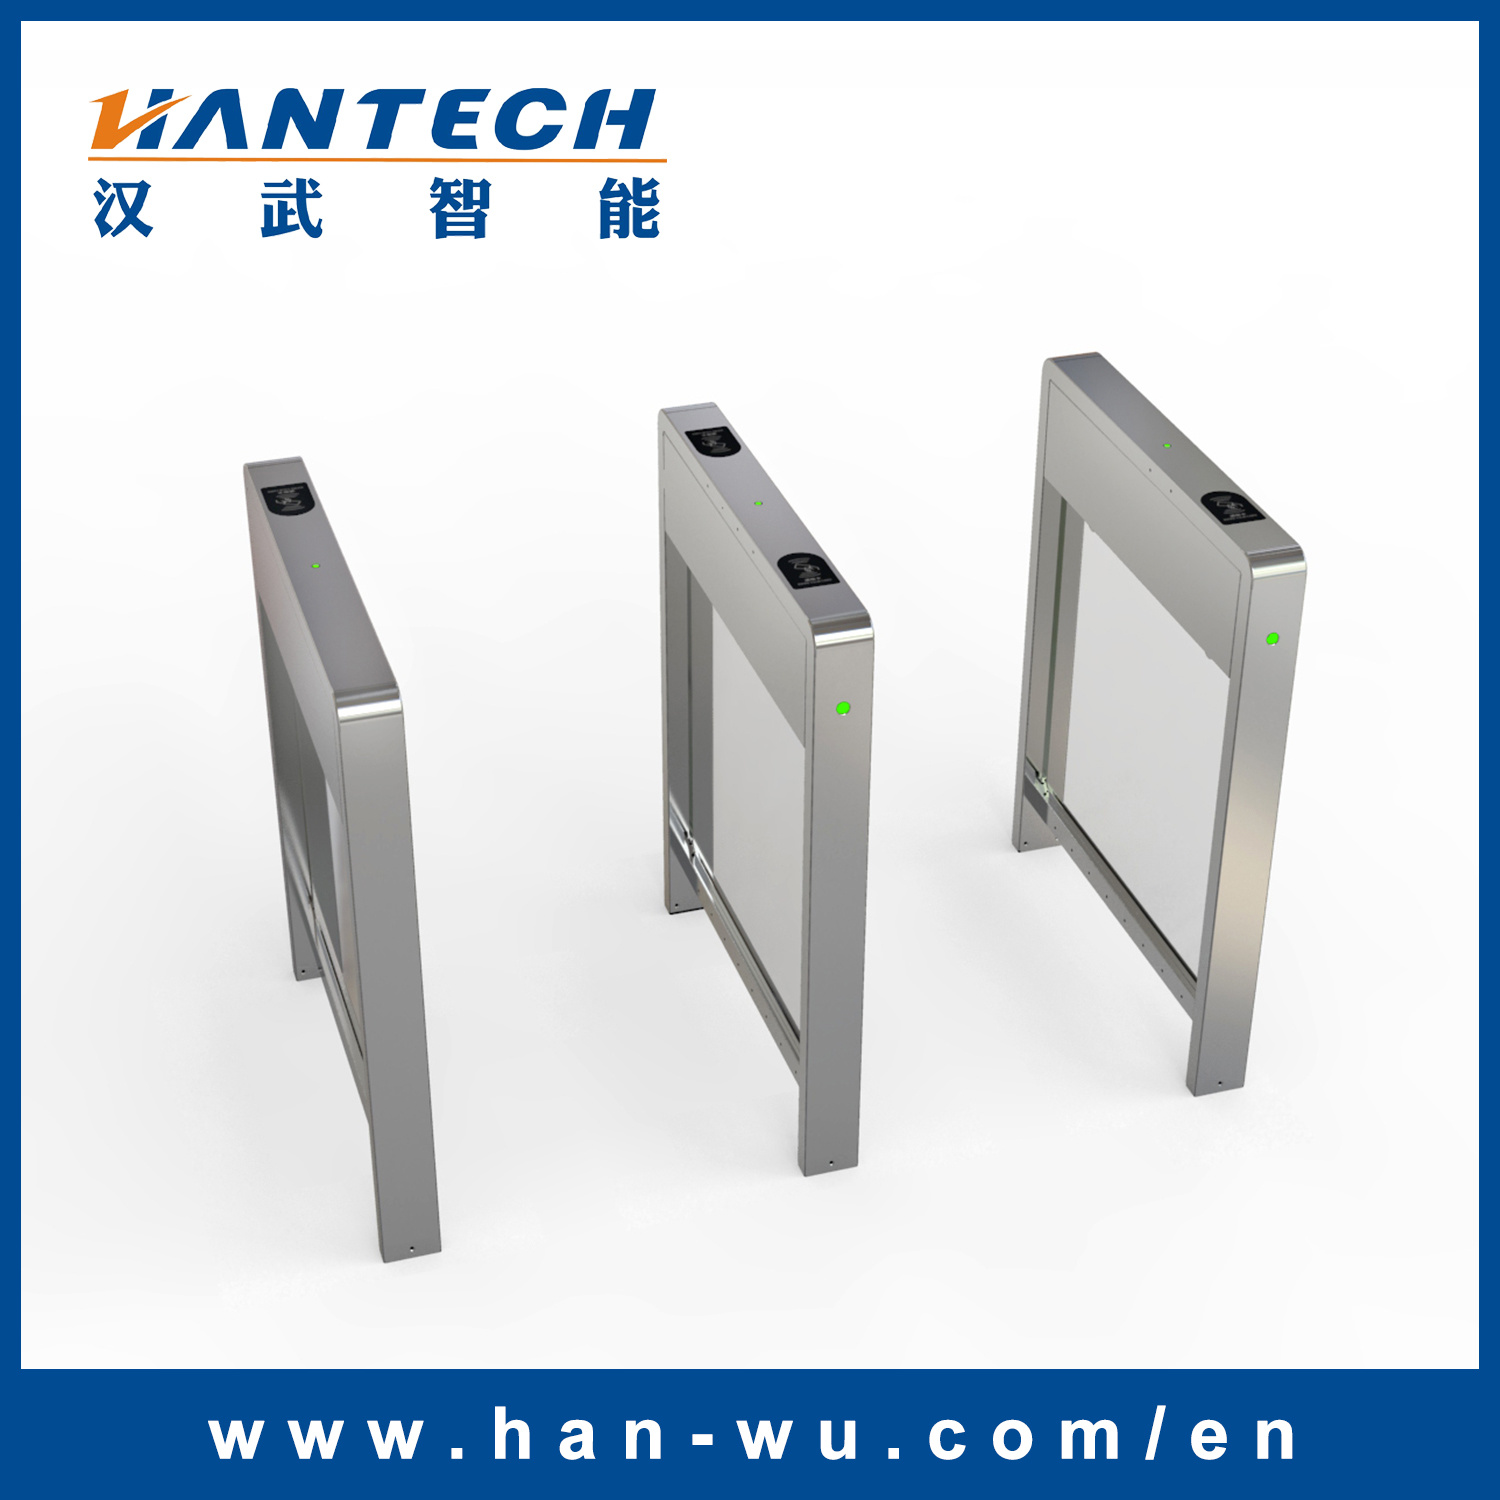 Sensor Speed Barrier for Wheelchair Accessible